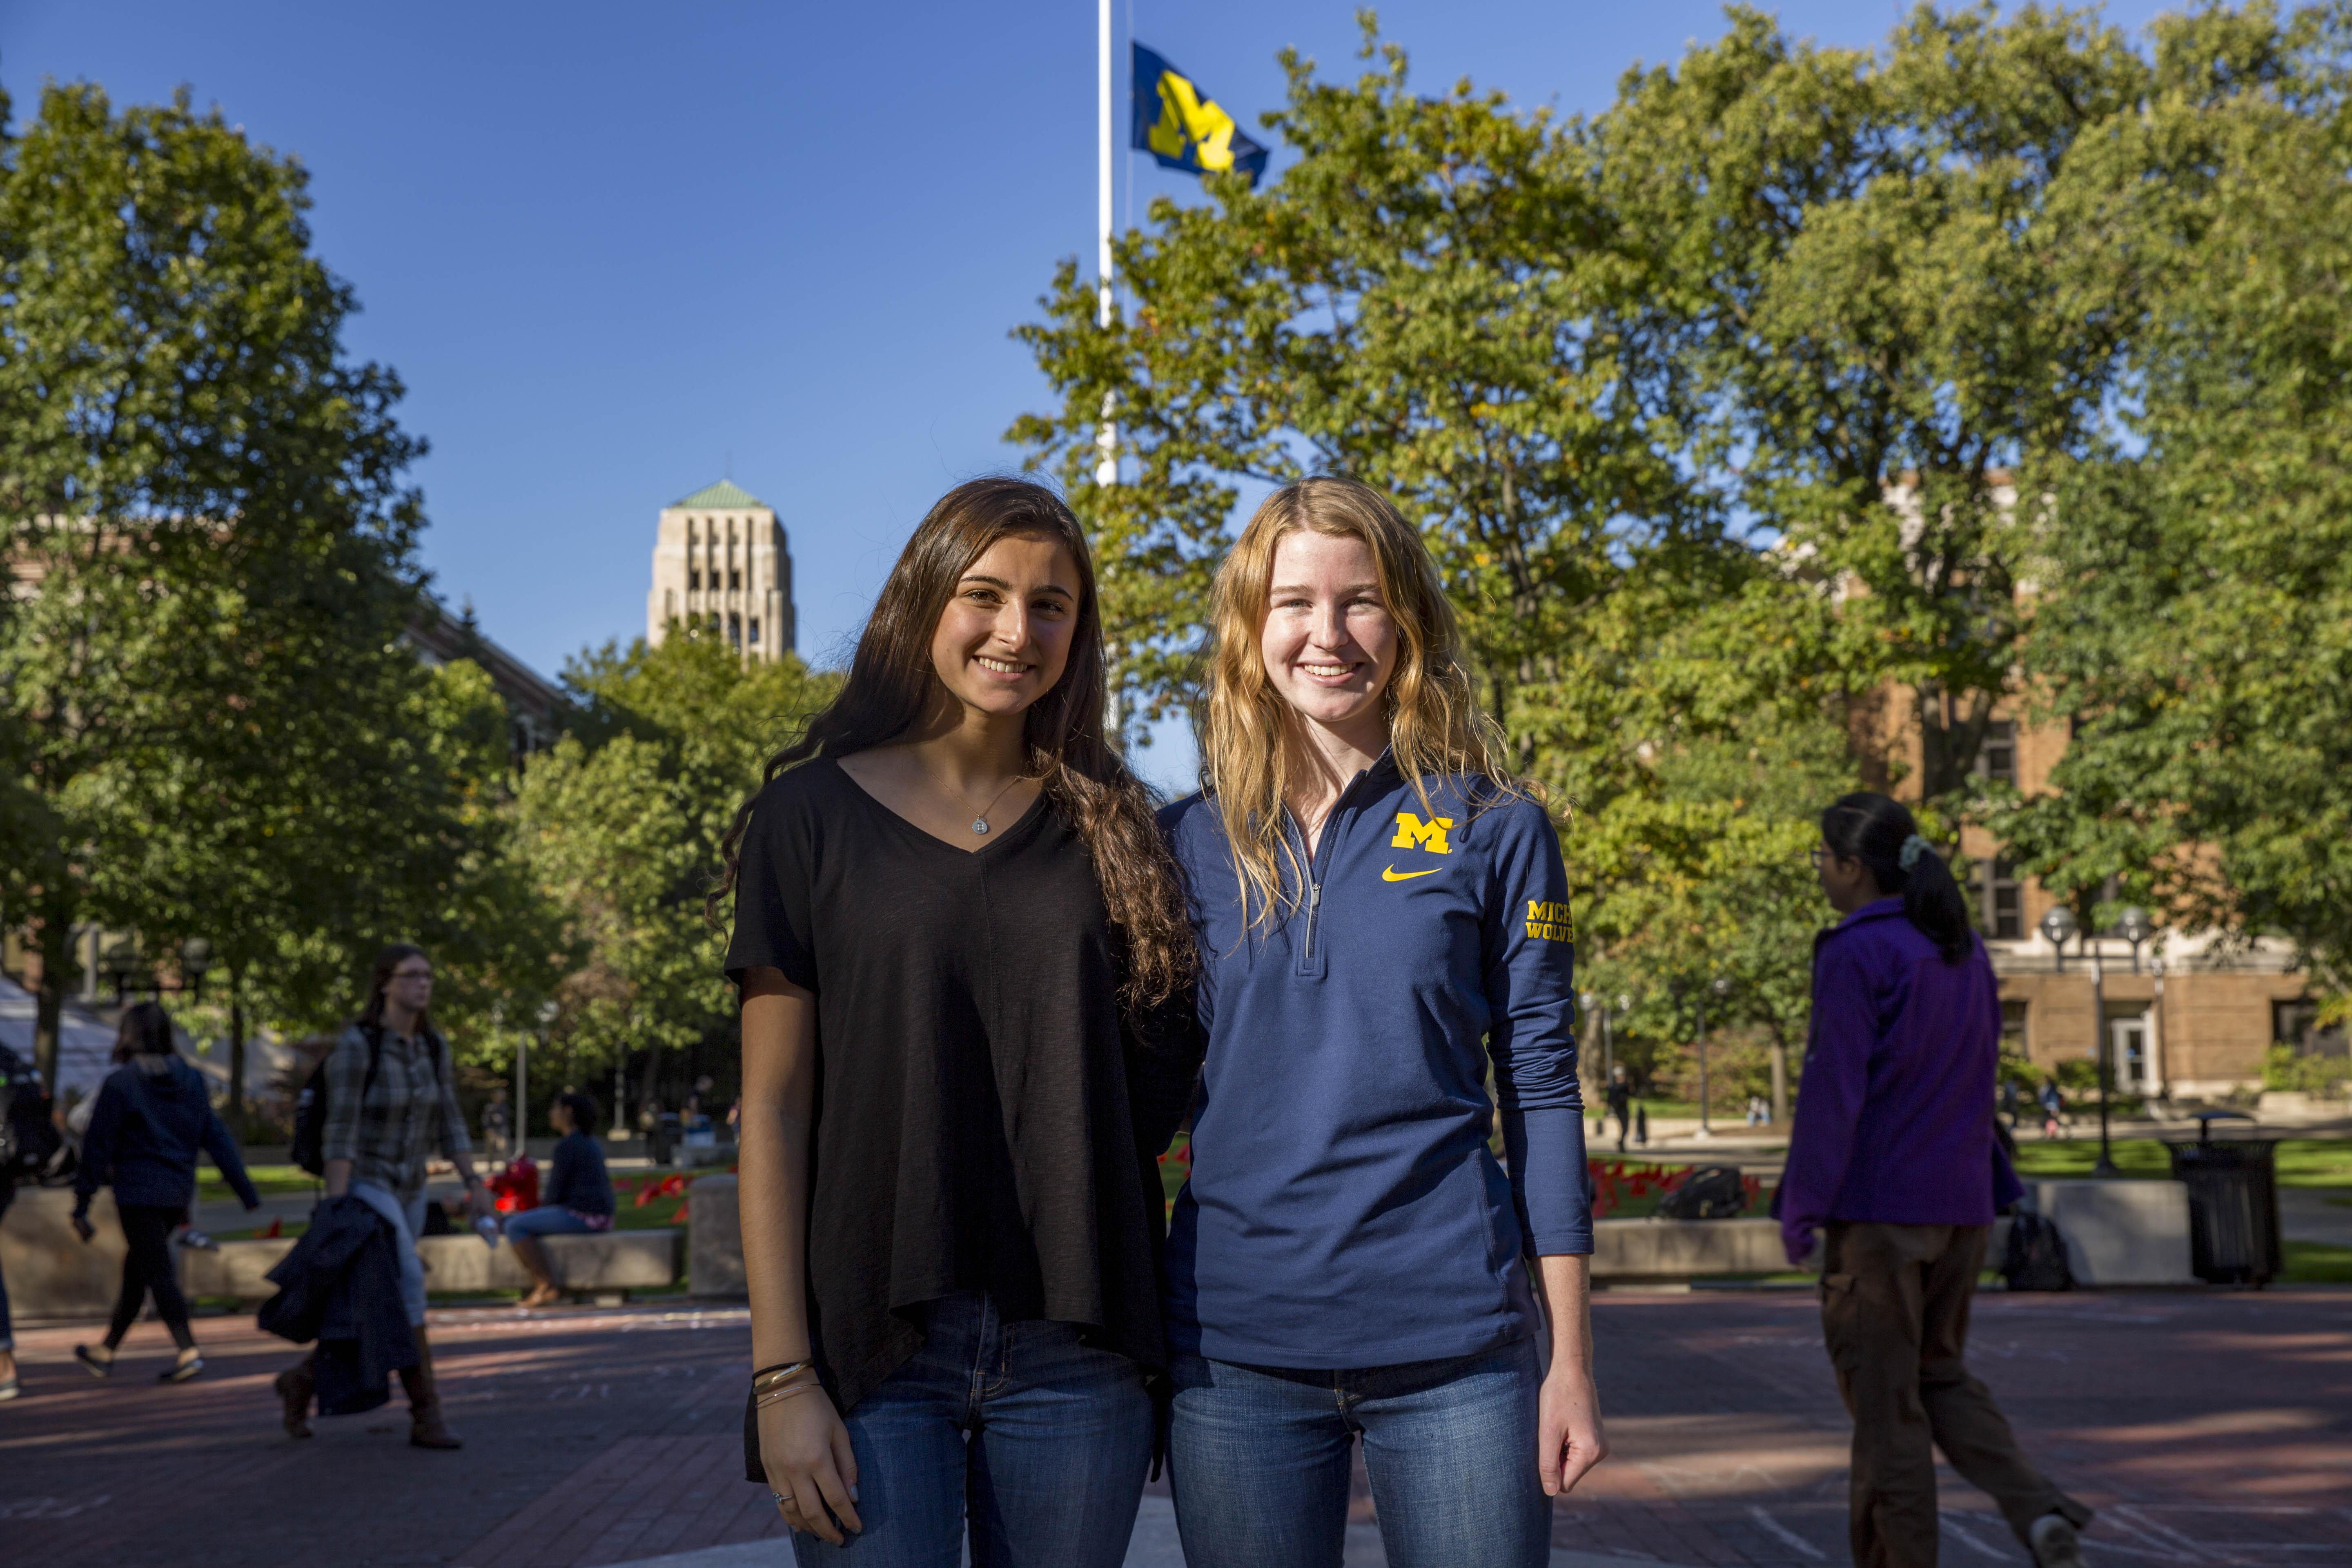 Students Blake Rogelsky and Meghan Hoffman on the University of Michigan campus